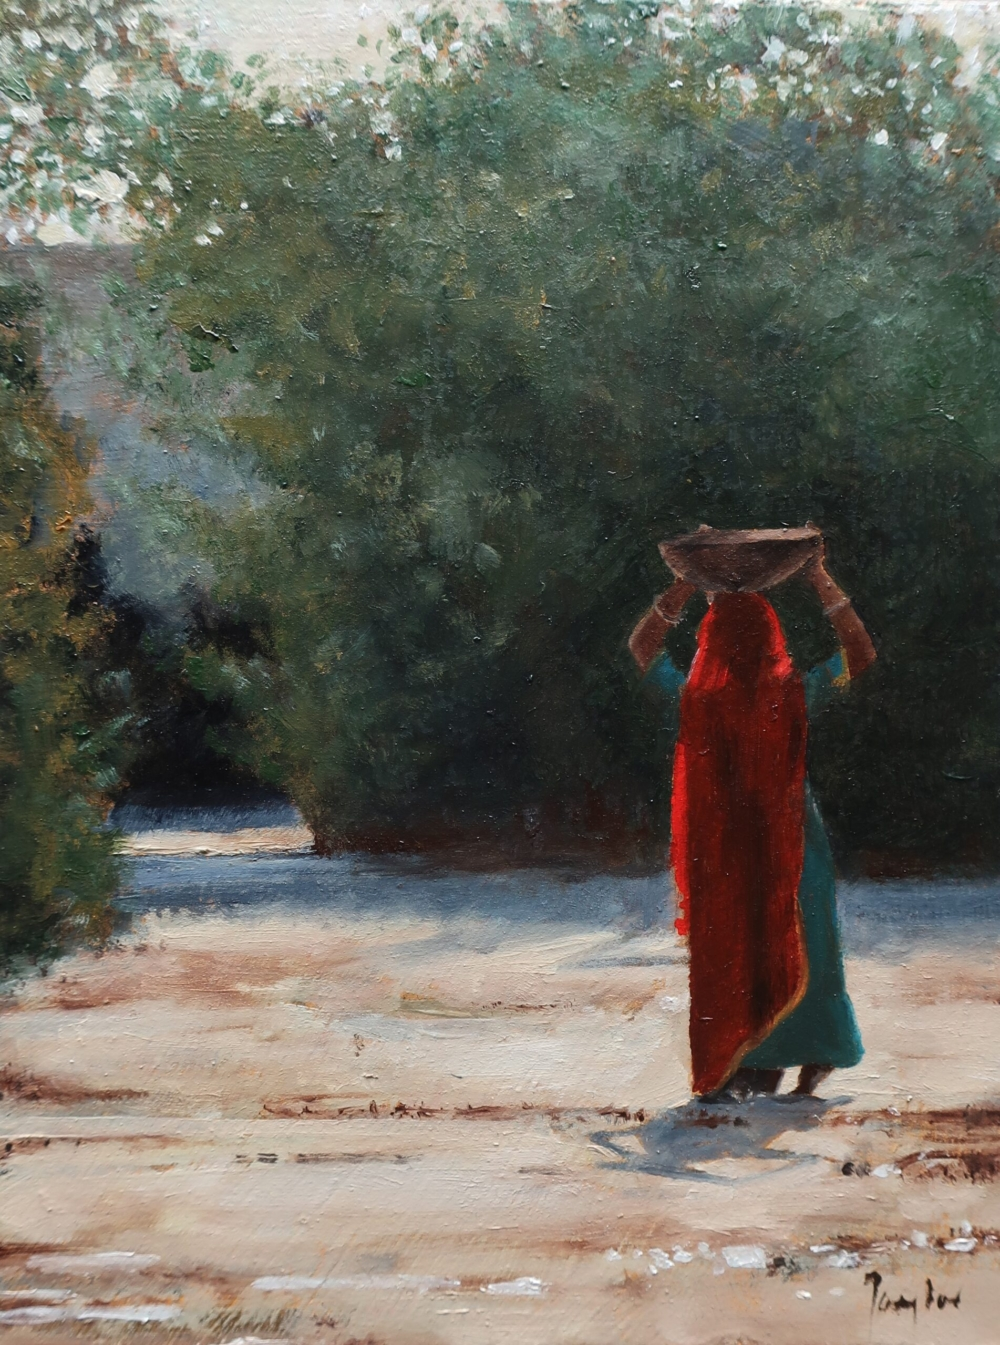 Oil painting of a village scene Rajasthan India